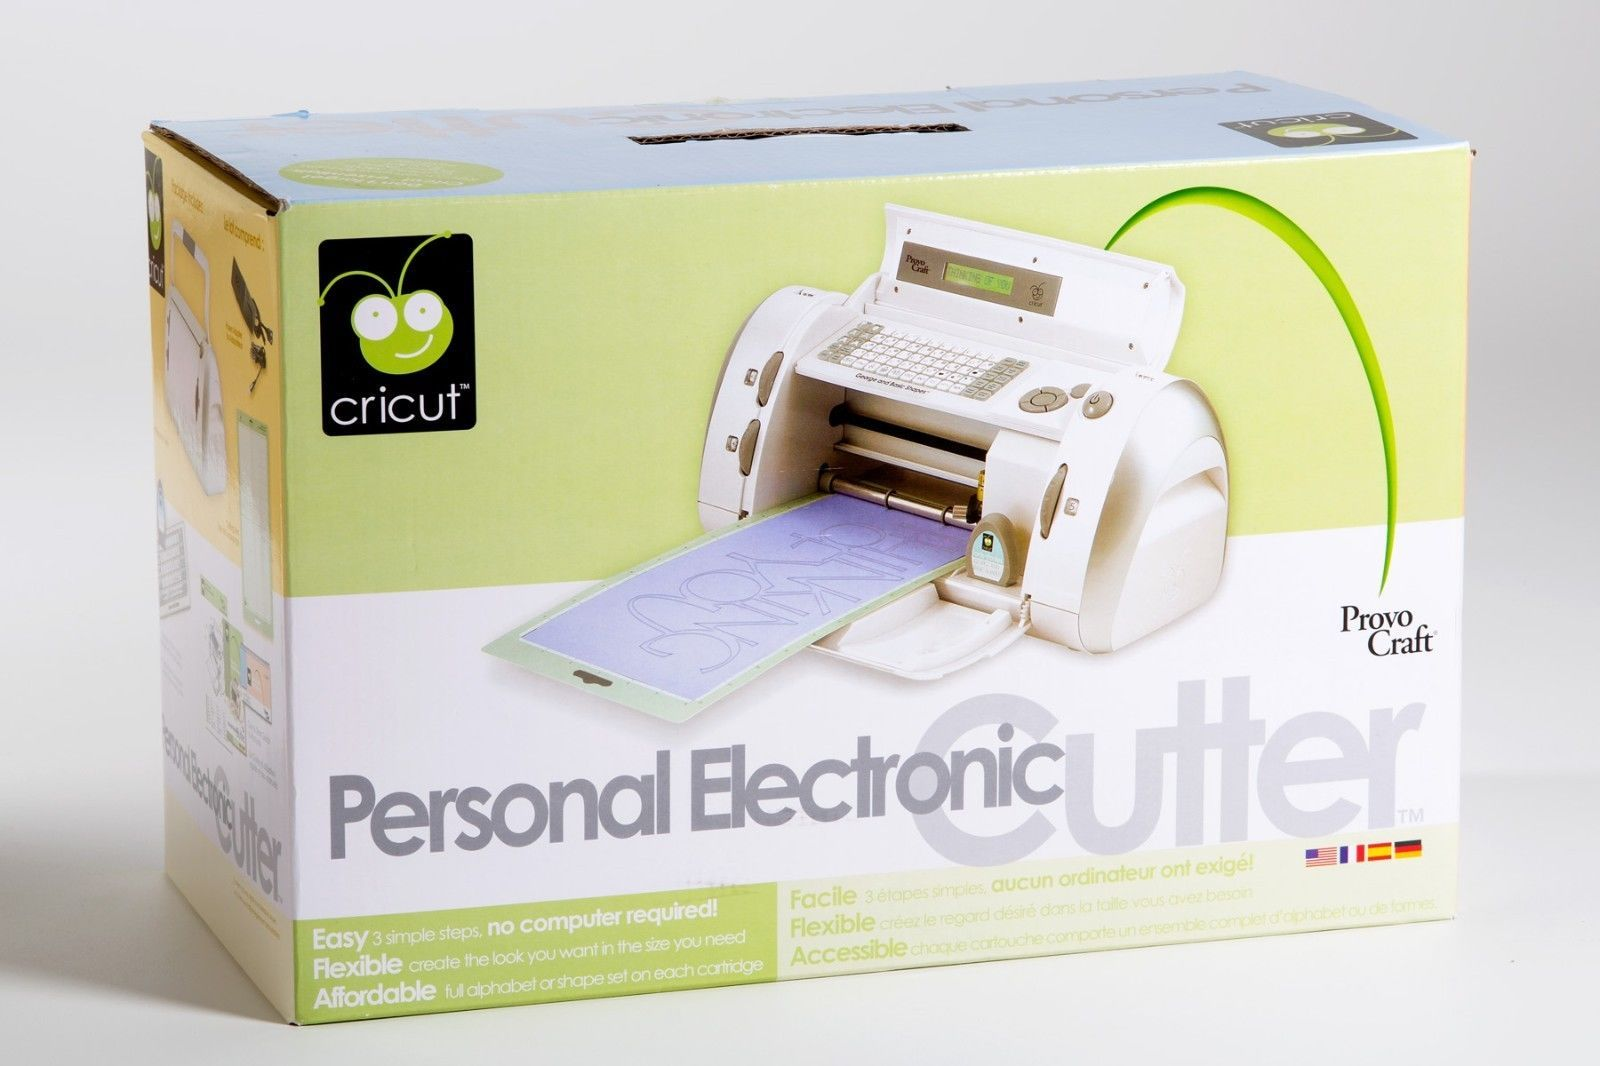 Cricut Personal Electronic Cutter By Provo Craft 29 0001